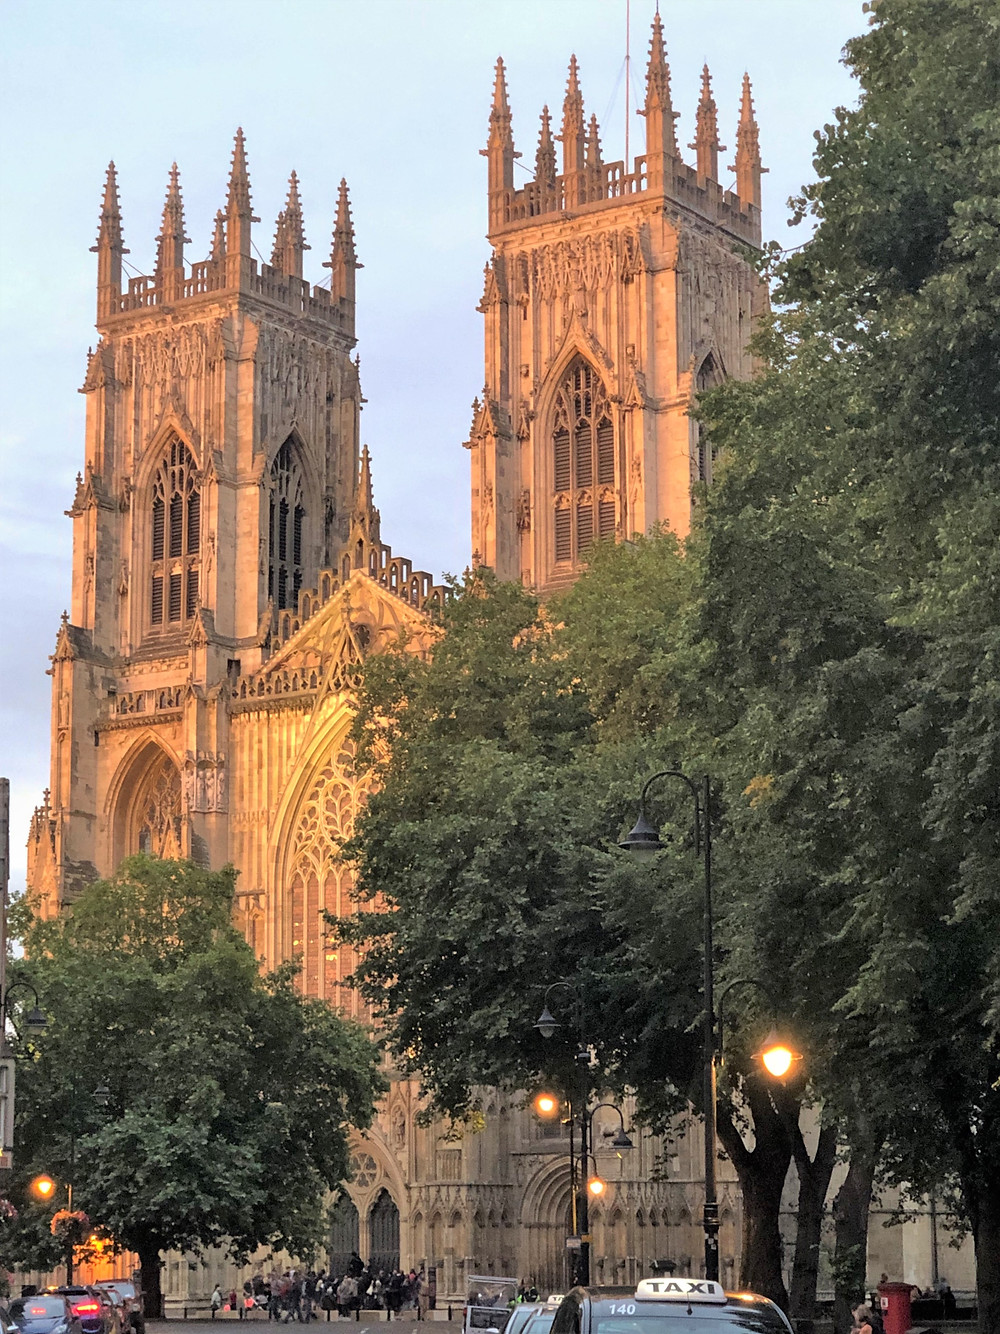 Work on York Minster started in 1220 and finished 1405. Sunset lighting up the towers of York Minster